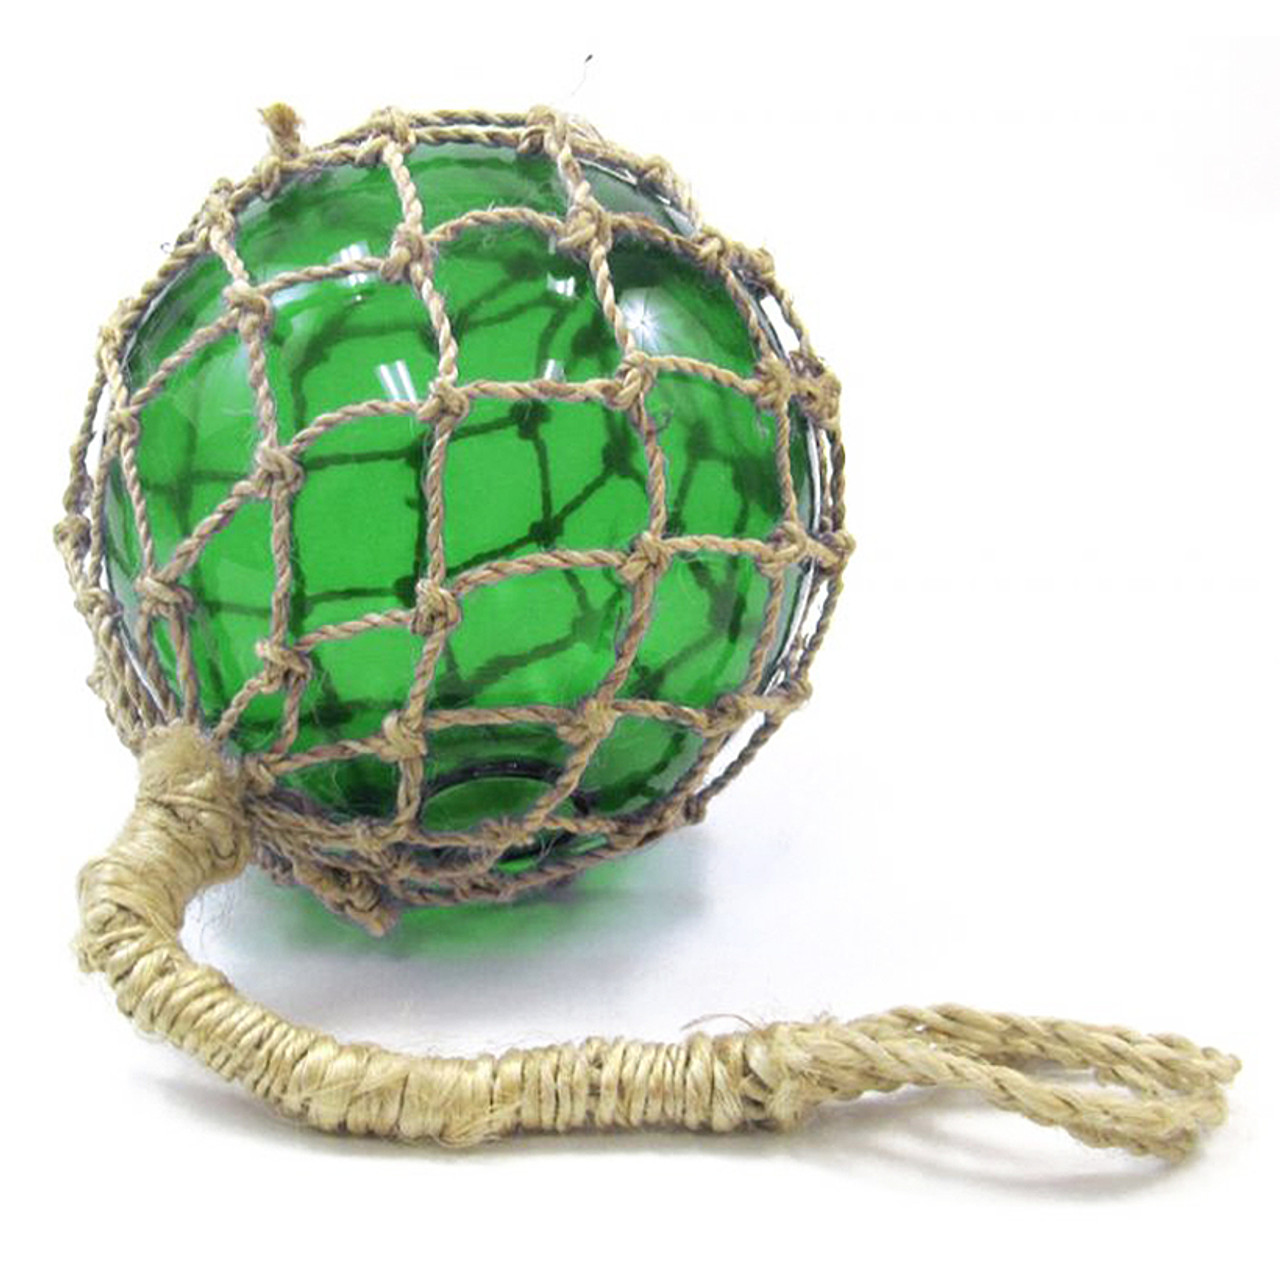 """Glass Fishing Float Green 8"""" w/ Rope Decorative Reproduction Wall Decor"""